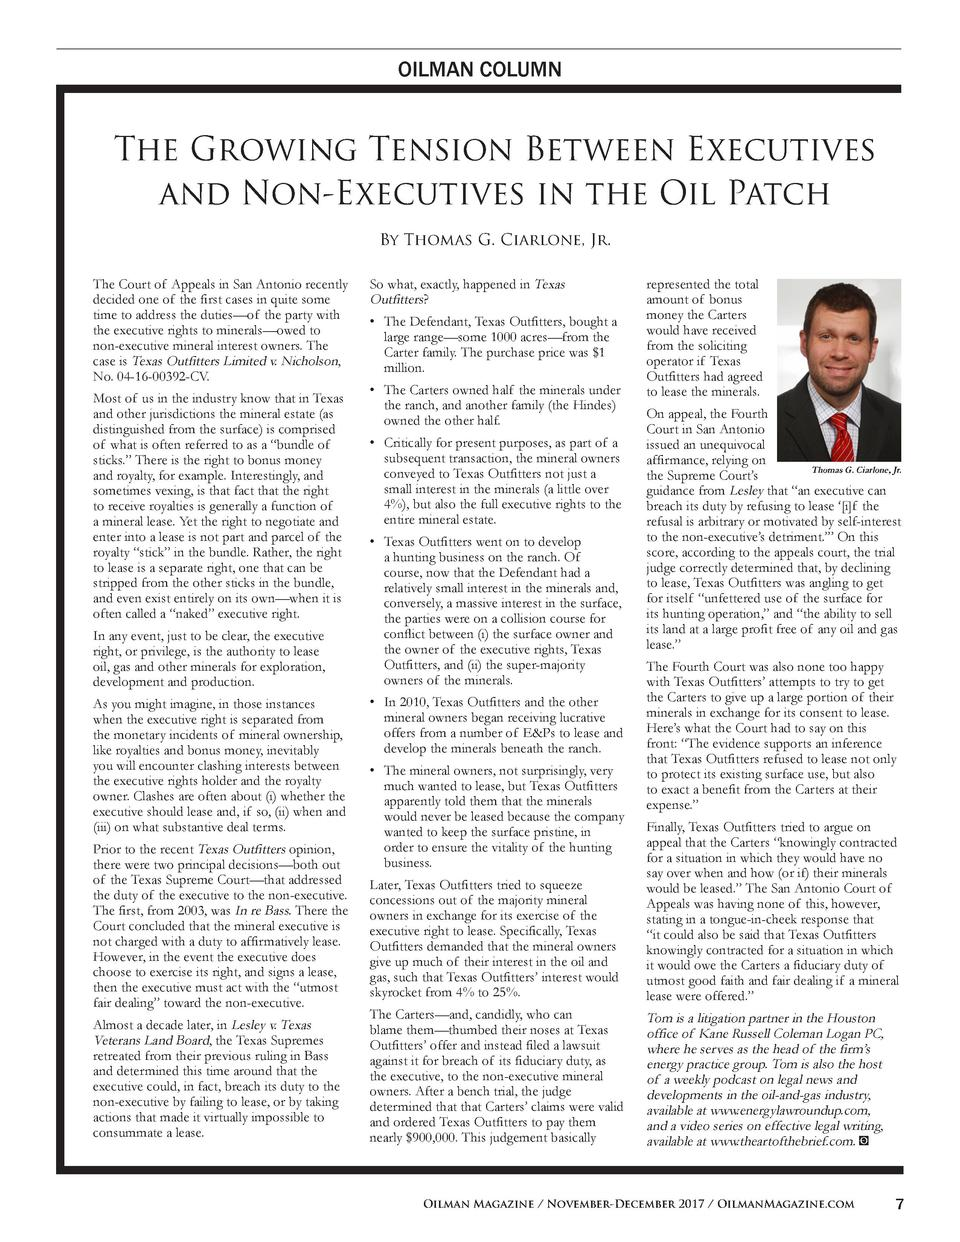 OILMAN COLUMN  The Growing Tension Between Executives and Non-Executives in the Oil Patch By Thomas G. Ciarlone, Jr. The C...